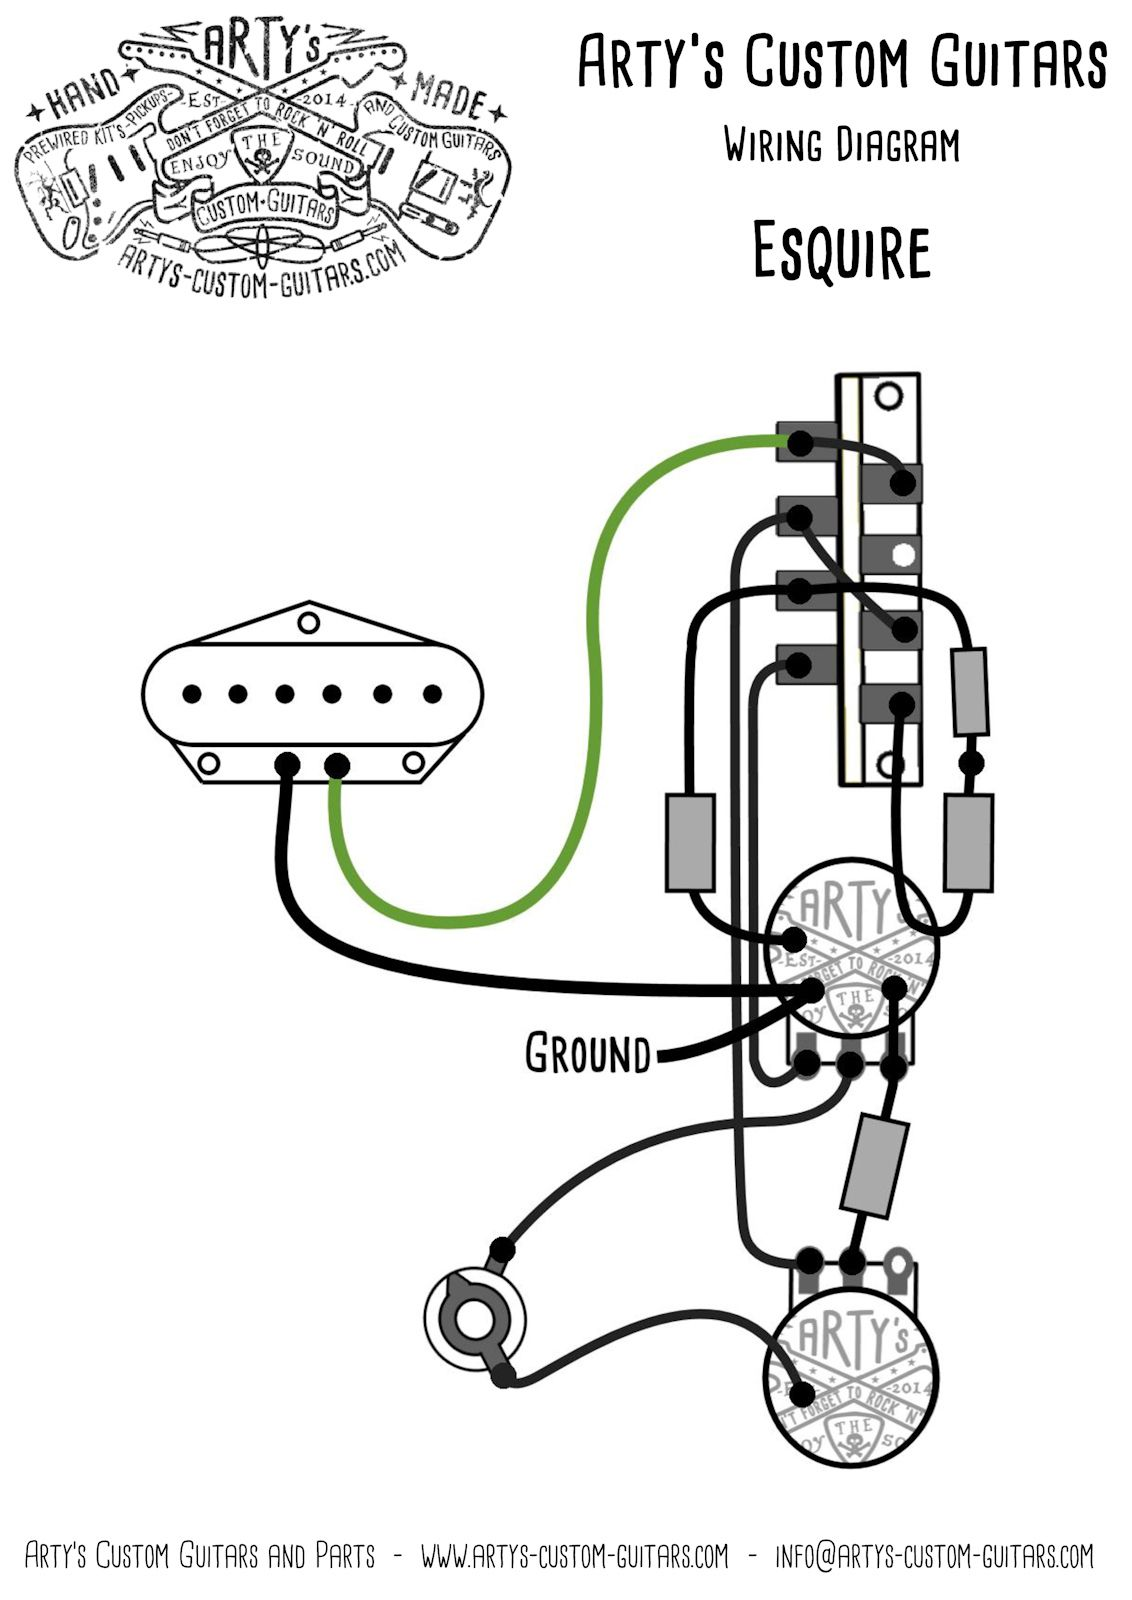 medium resolution of esquire wiring diagram prewired kit arty s custom guitars